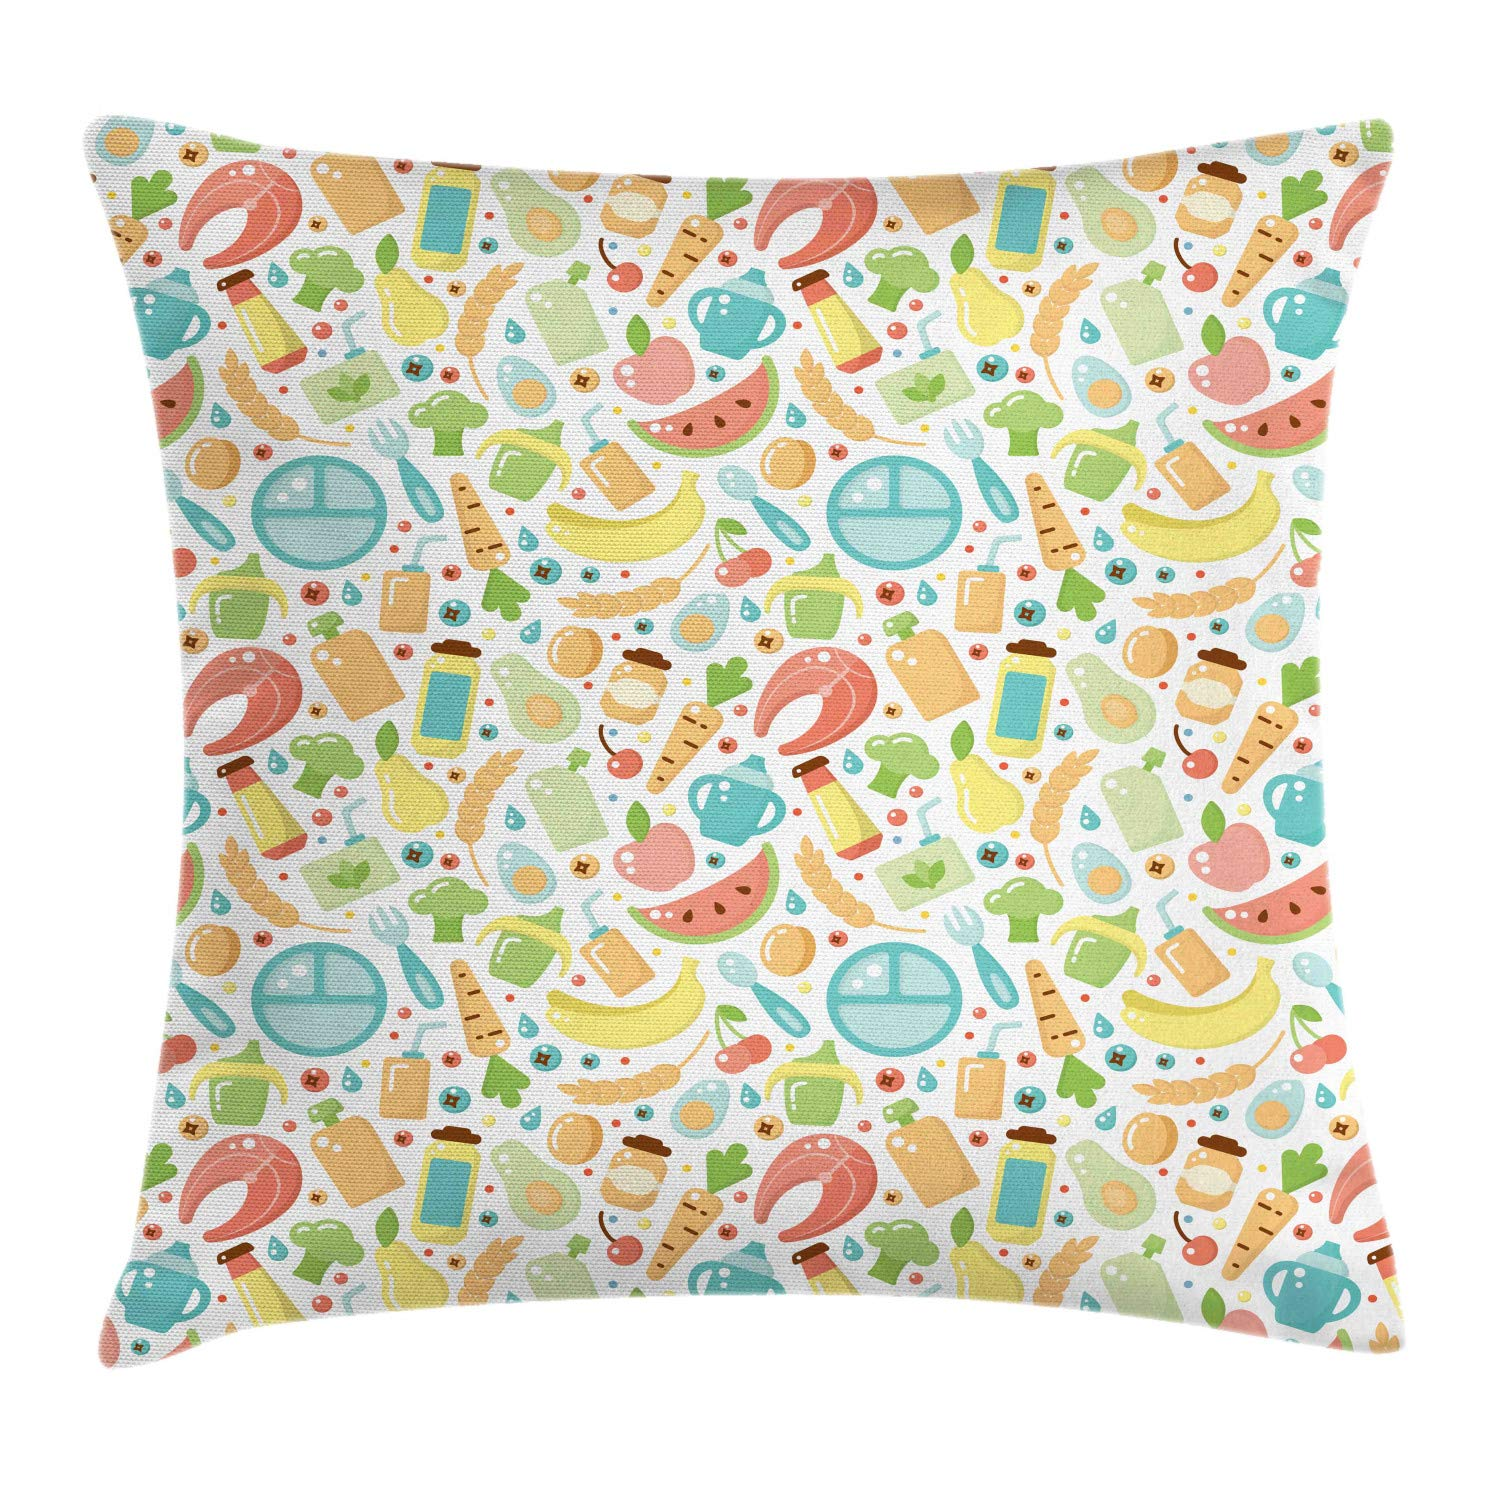 Ambesonne Salmon Throw Pillow Cushion Cover, Baby Food Watermelon Banana Apple Nursery Theme Colorful Repetition Graphic, Decorative Square Accent Pillow Case, 24'' X 24'', Multicolor by Ambesonne